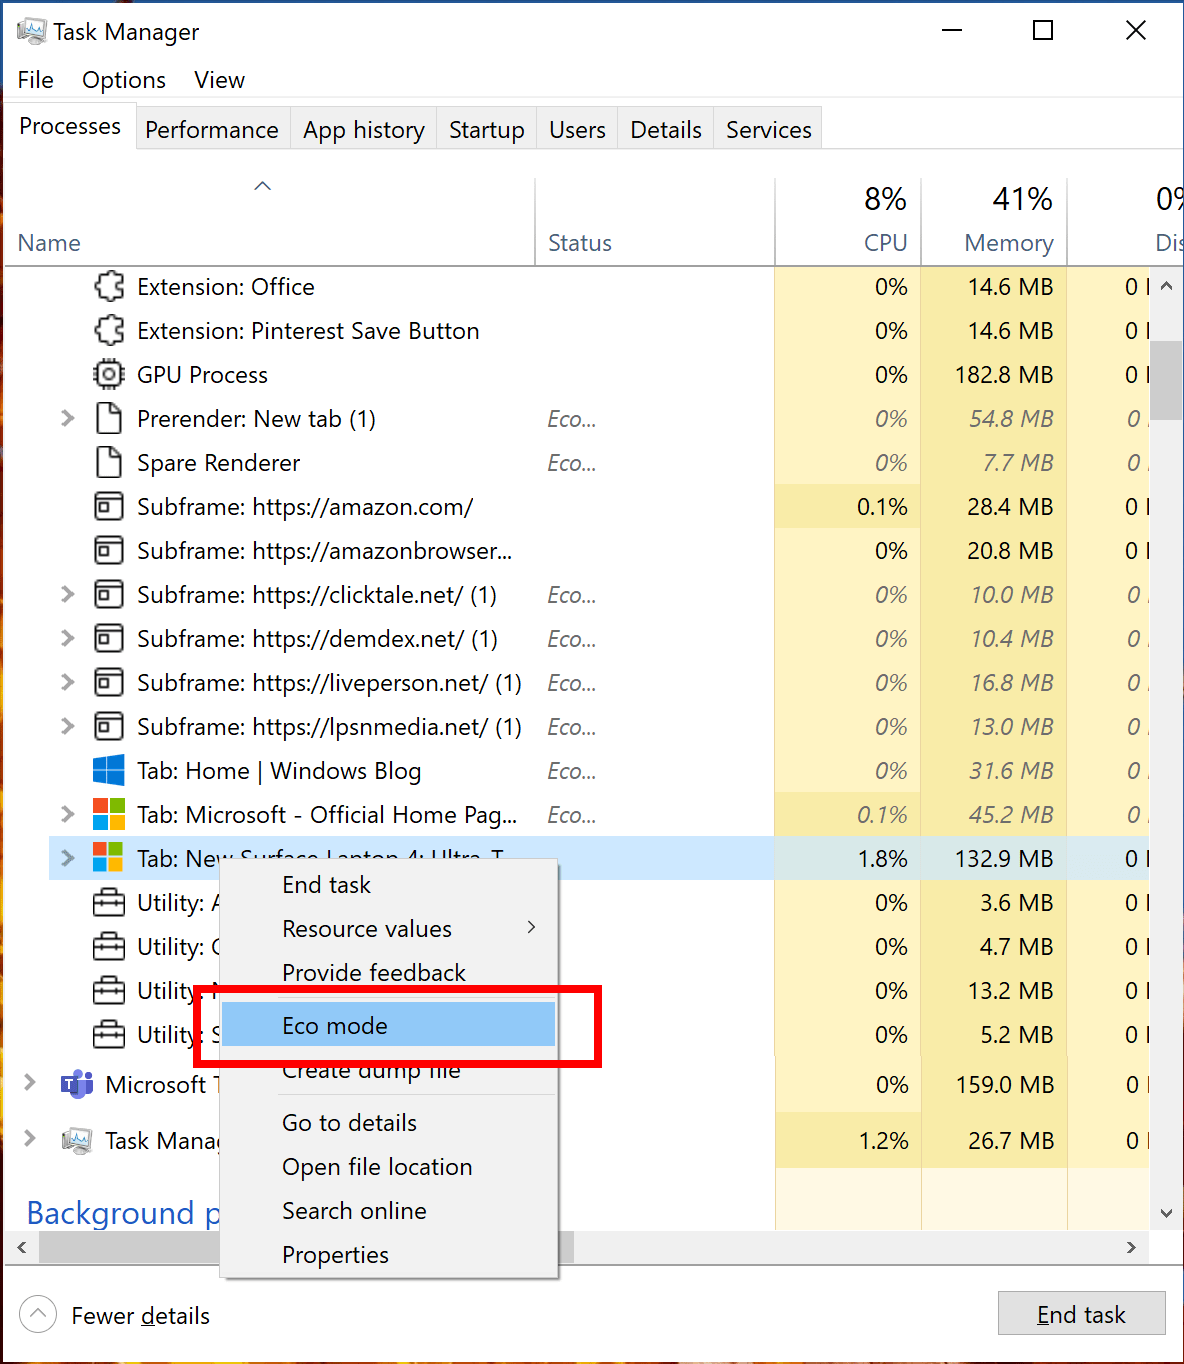 Right-click Eco mode in Task Manager